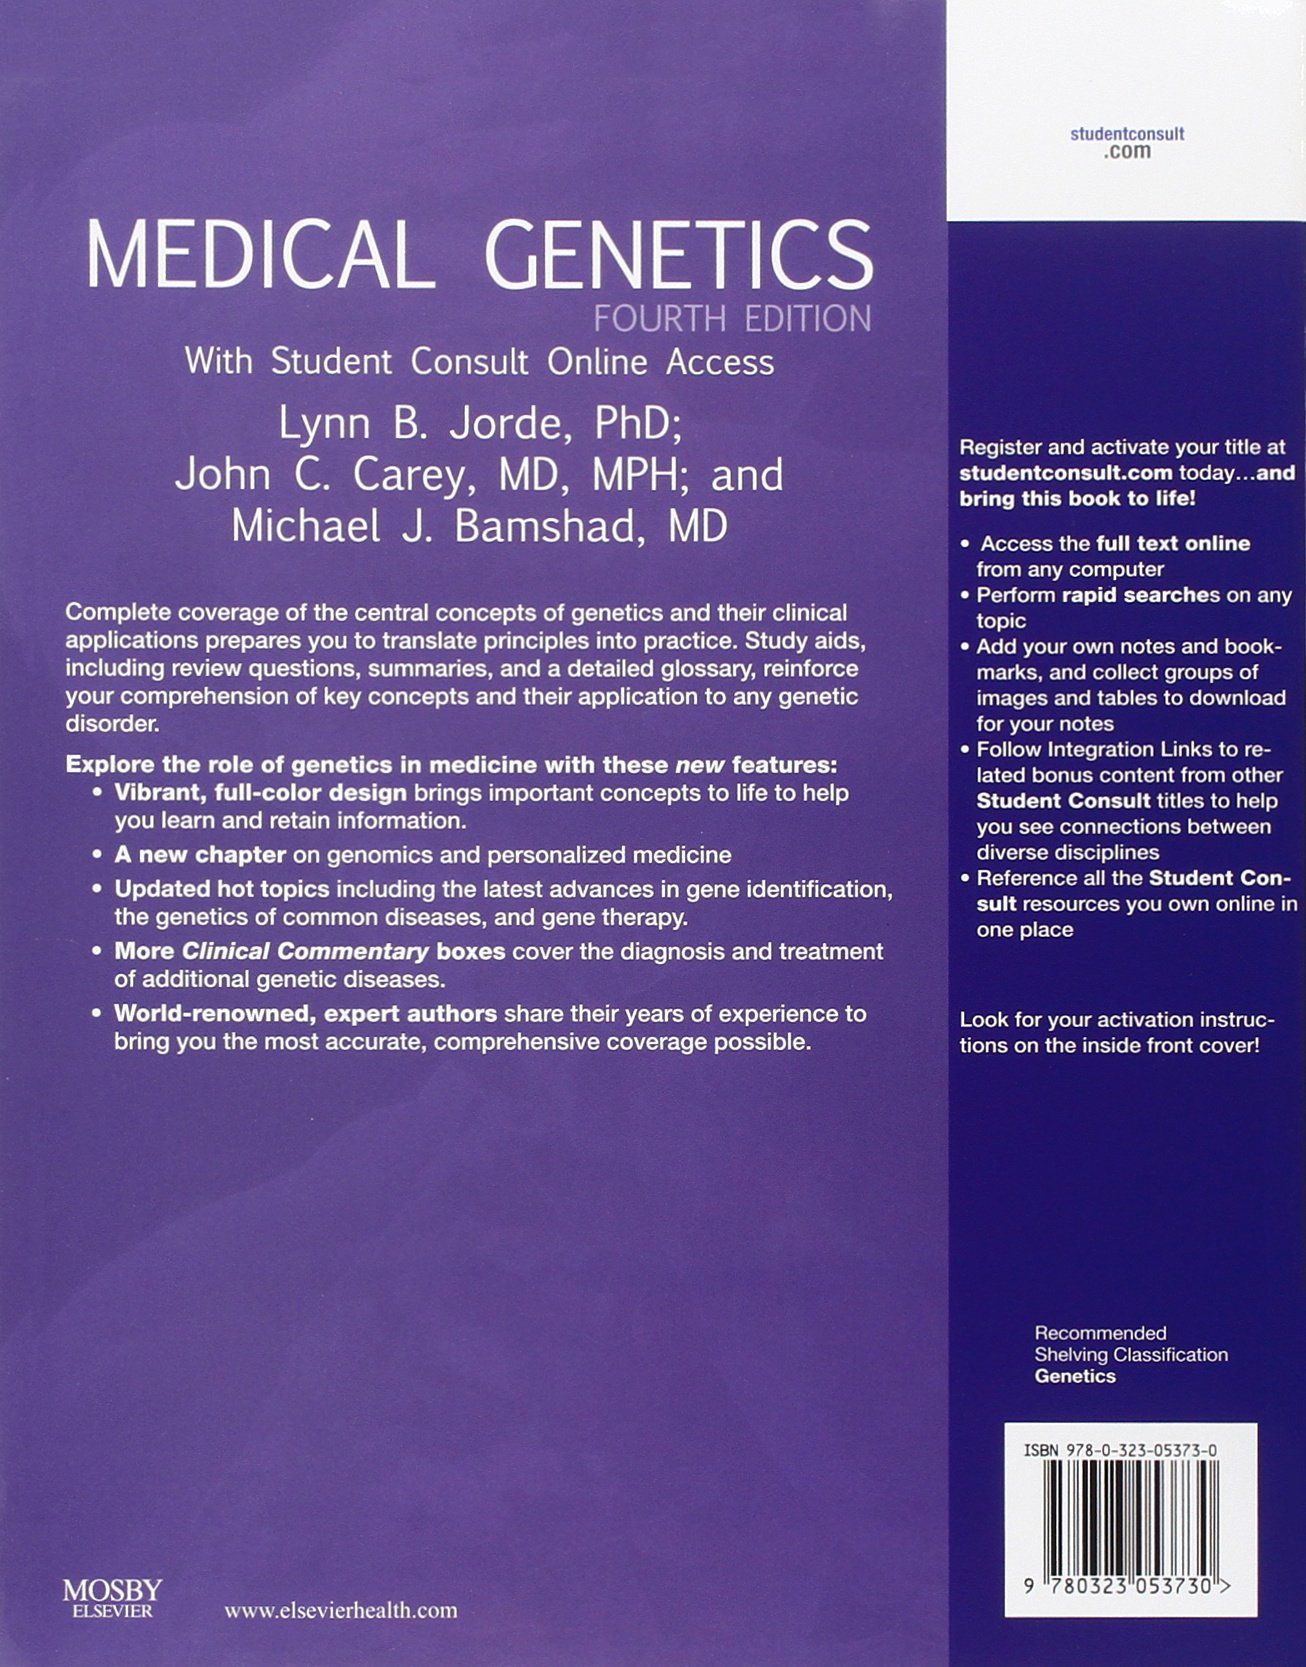 medical genetics student consult online access e amazon medical genetics student consult online access 4e amazon co uk lynn b jorde phd john c carey md mph michael j bamshad md 9780323053730 books